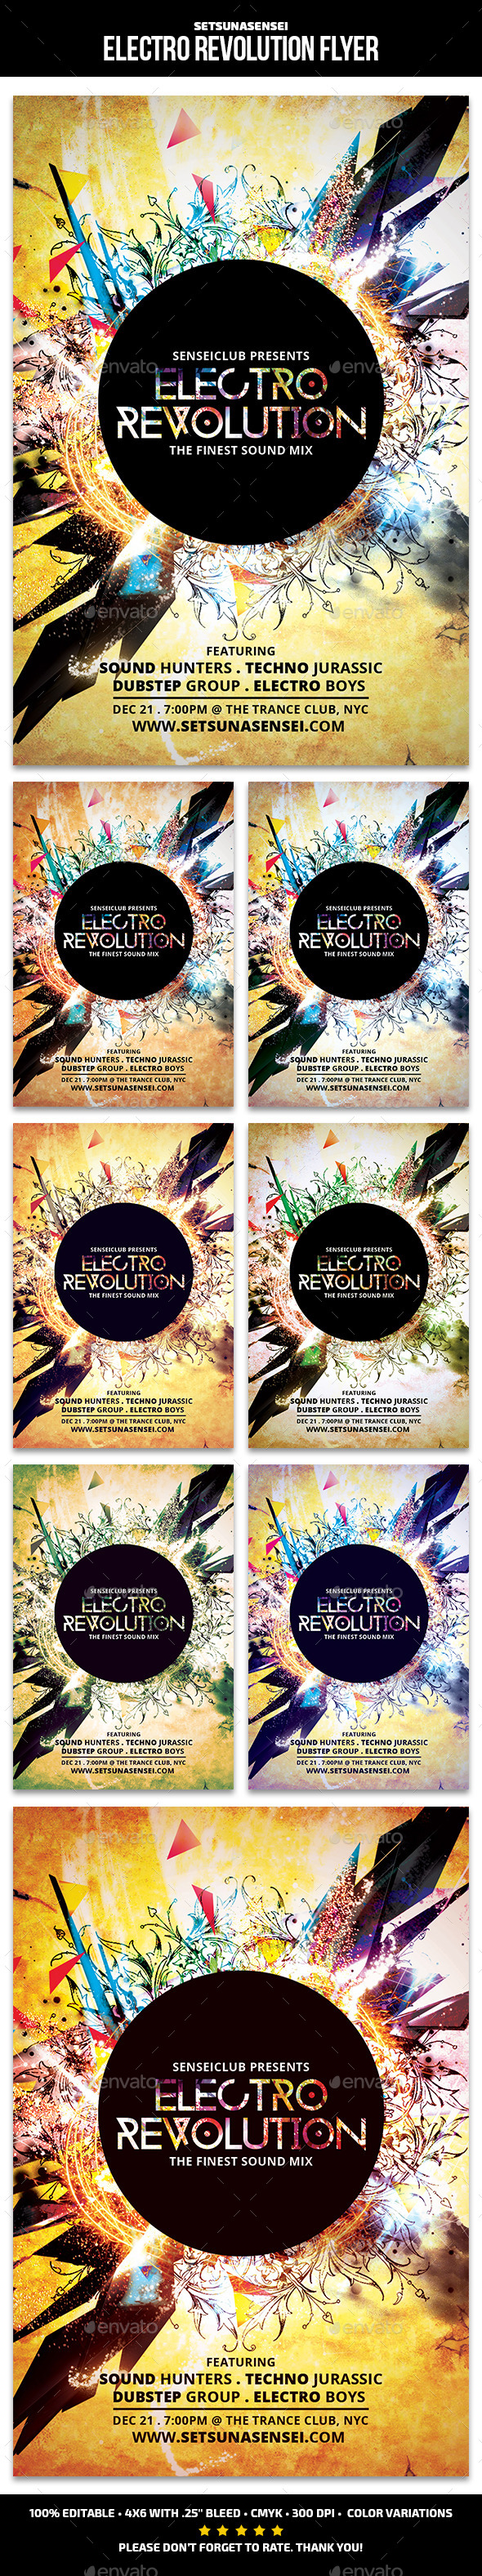 Electro Revolution Flyer - Clubs & Parties Events